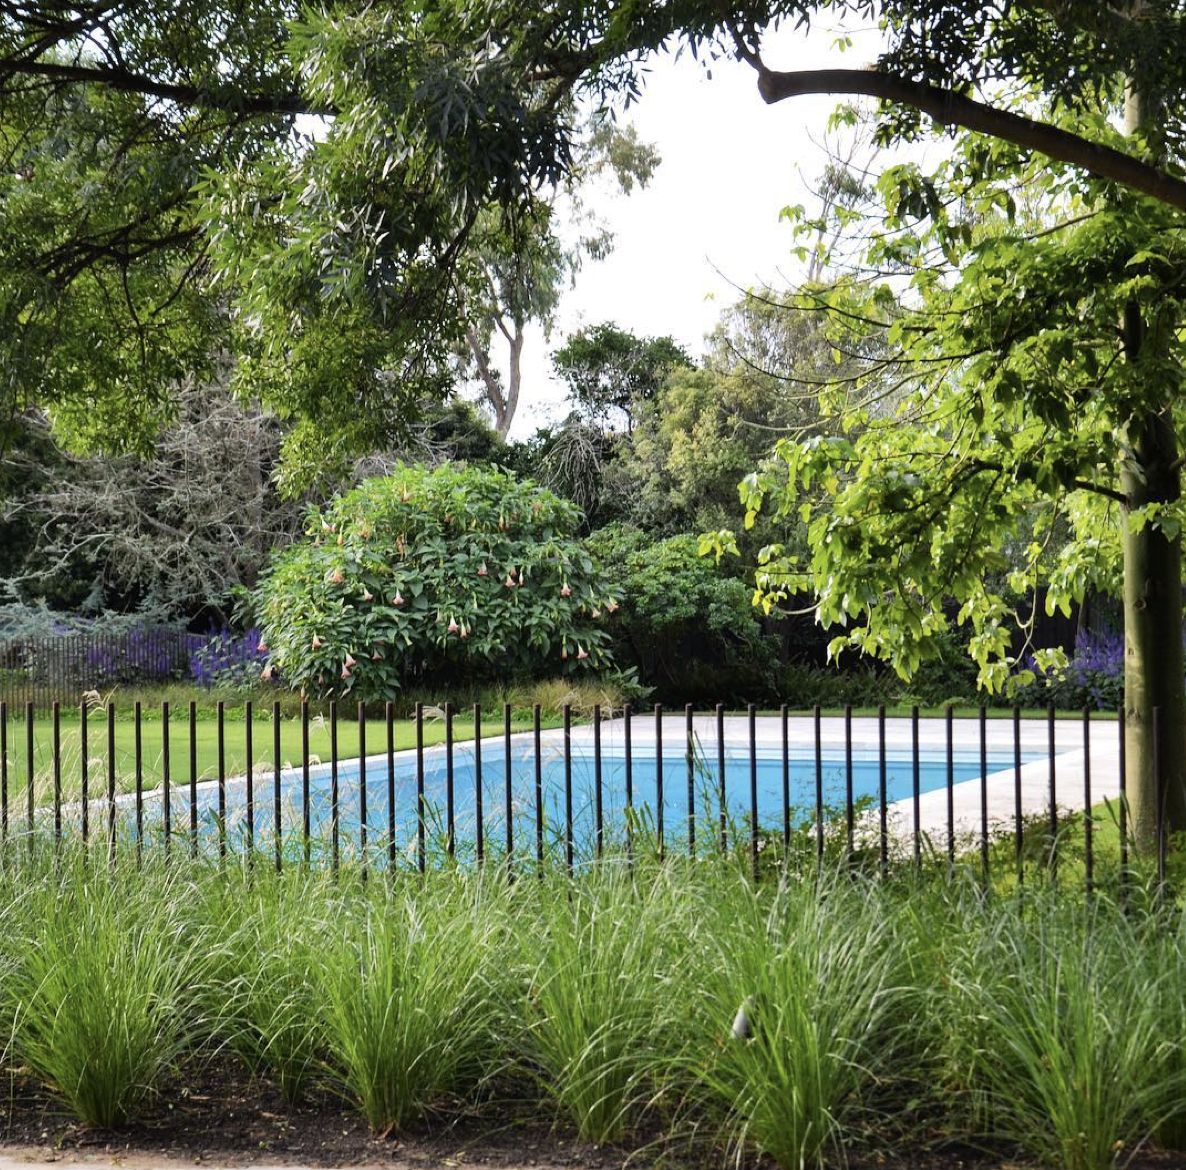 Steel Rod Pool Fence By Eckersley Garden Architecture Pool